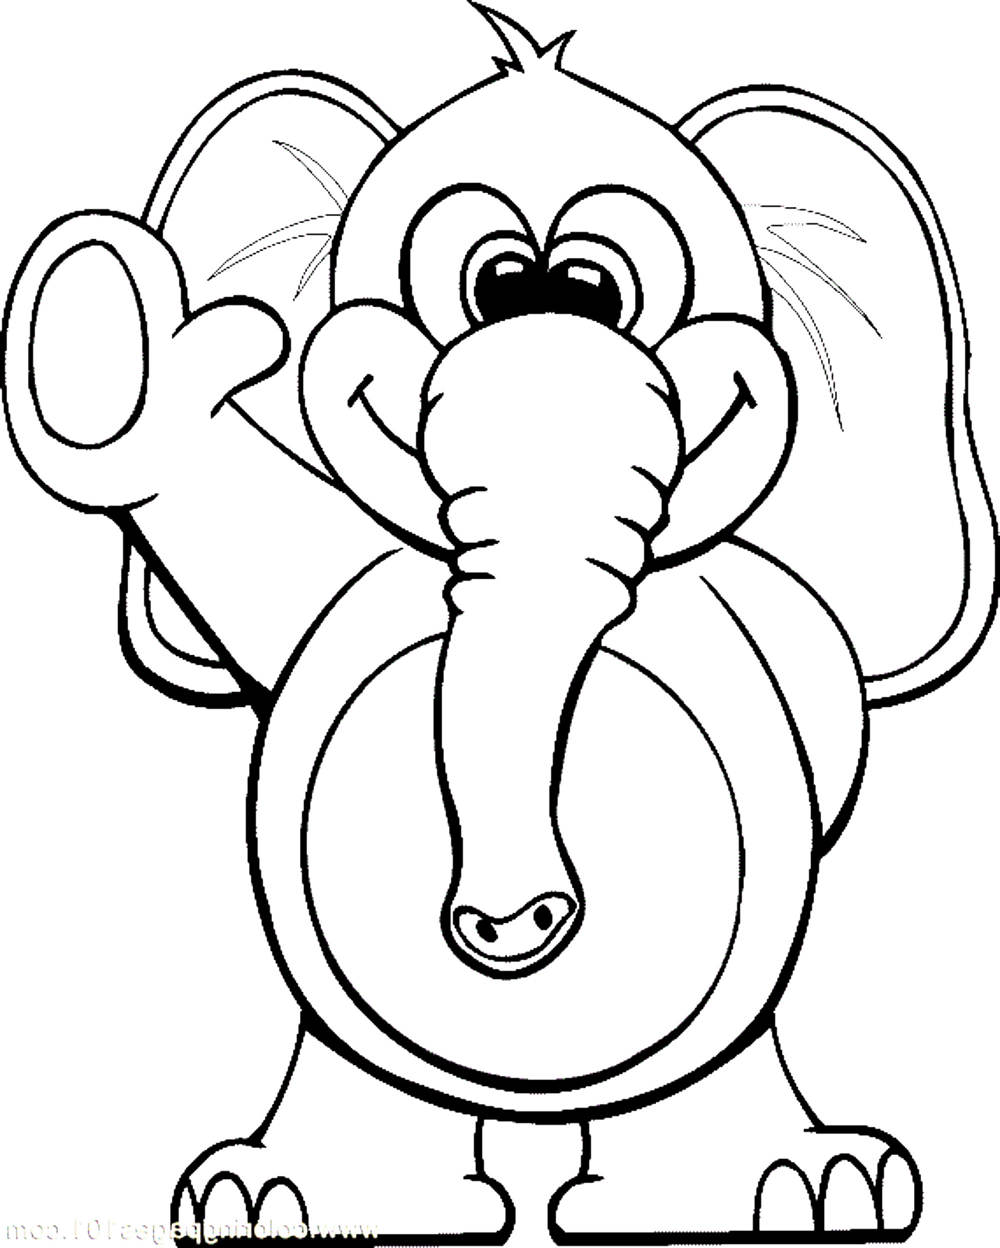 colouring pages of elephant print download teaching kids through elephant coloring elephant pages colouring of